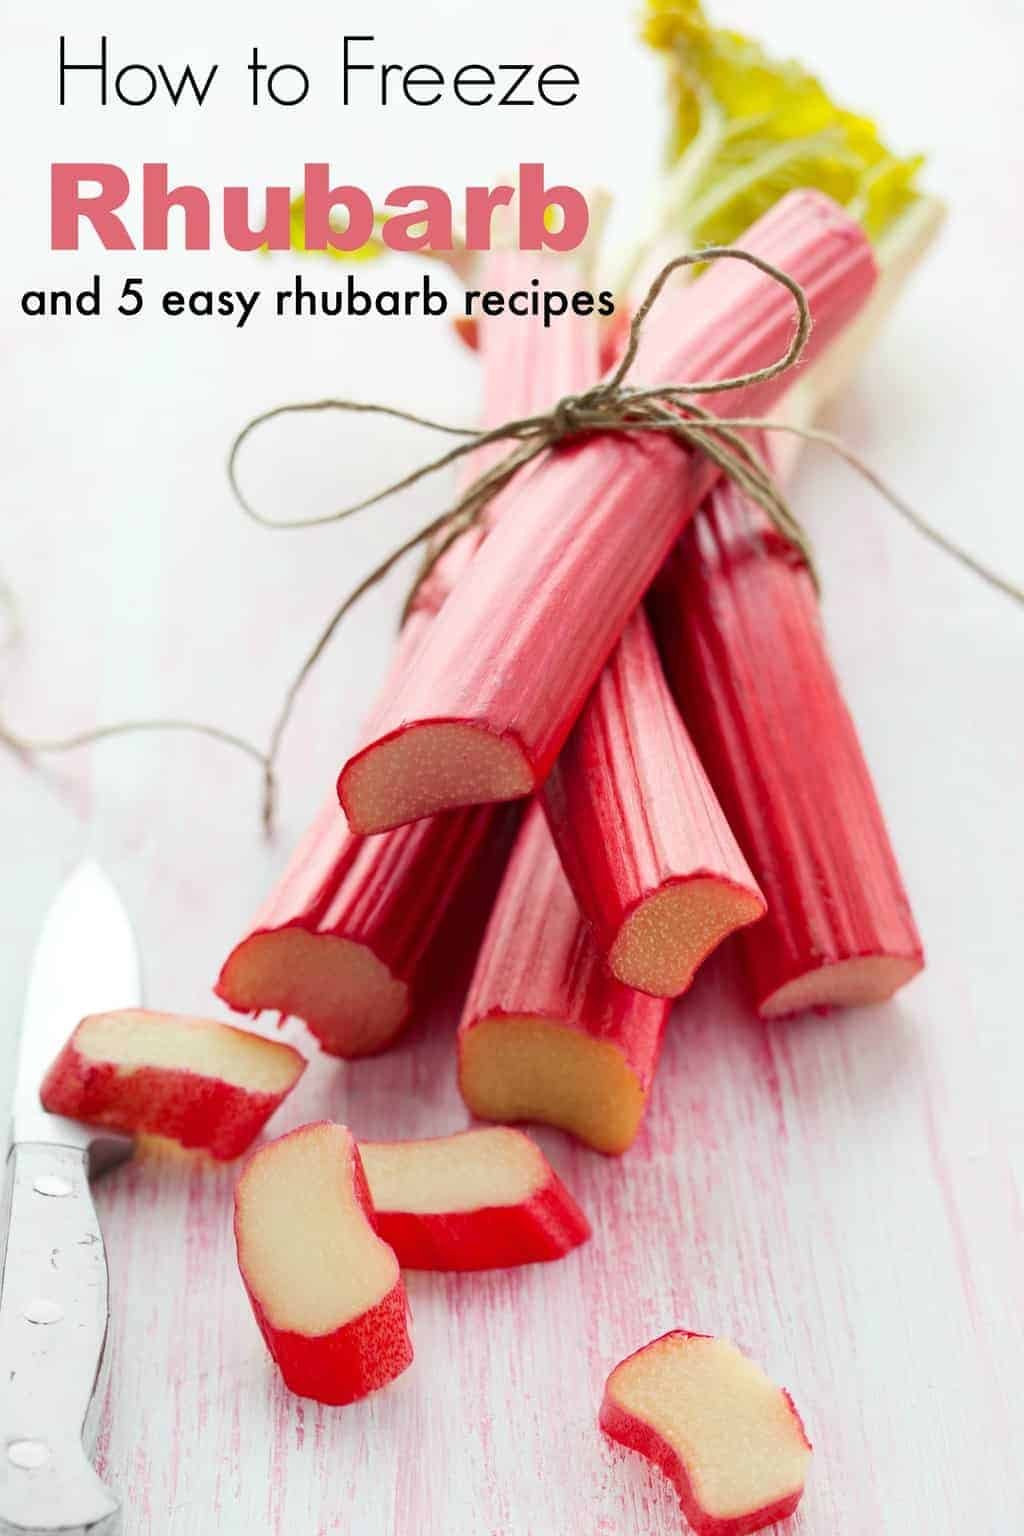 Have too much rhubarb? Learn how to freeze rhubarb and get 5 easy rhubarb recipes to try. Freezing rhubarb is easy with these tips!